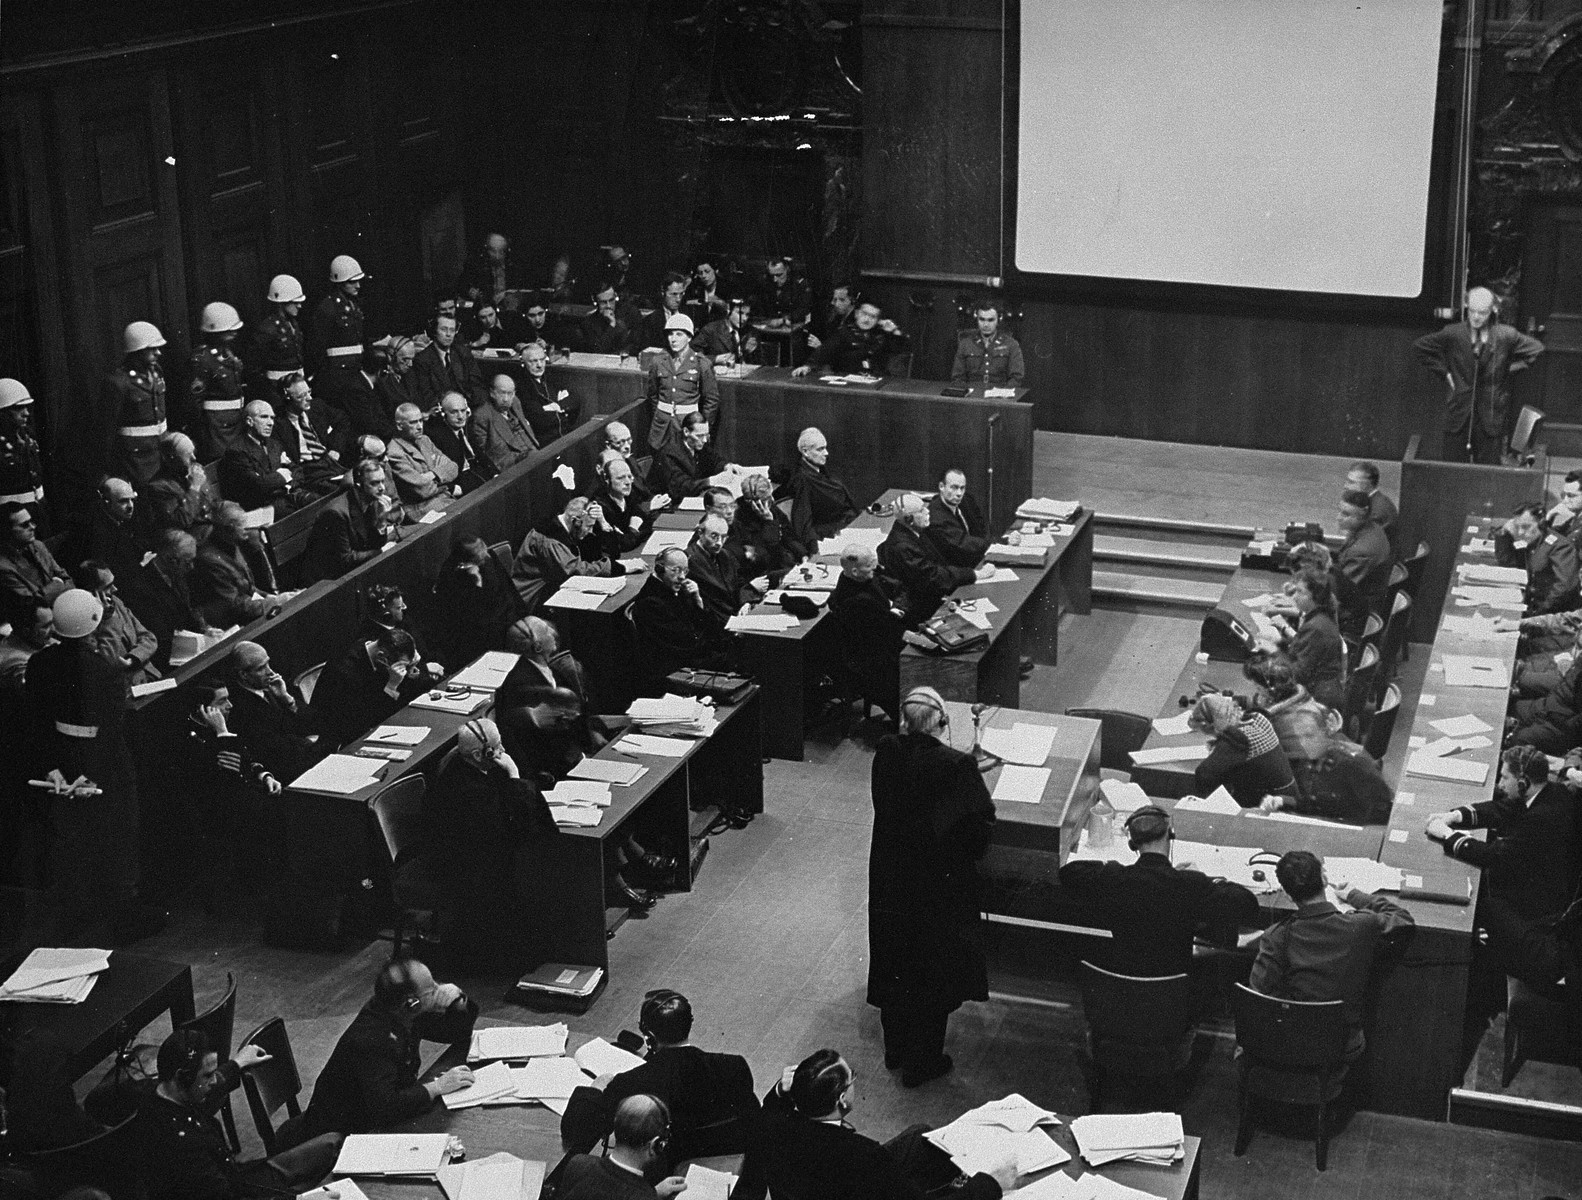 """Dr. Nelte, defense attorney for Wilhelm Keitel, questions a witness at the International Military Tribunal trial of war criminals at Nuremberg.  Pictured at the upper left is the interpreters box.  To the right of the box is the coordinating monitor who regulates the speed of the speakers voice by flashing either a red light meaning """"stop"""" or a yellow one, meaning """"slow down.""""  Sitting beside him (below the screen) is Col. Mays, the marshall of the court who is responsible for order in the courtroom while the tribunal is in session.  The defendants dock is pictured at the left.  In front of them are the defense counsel sitting at five tables.  Facing them on the right are the court reporters."""